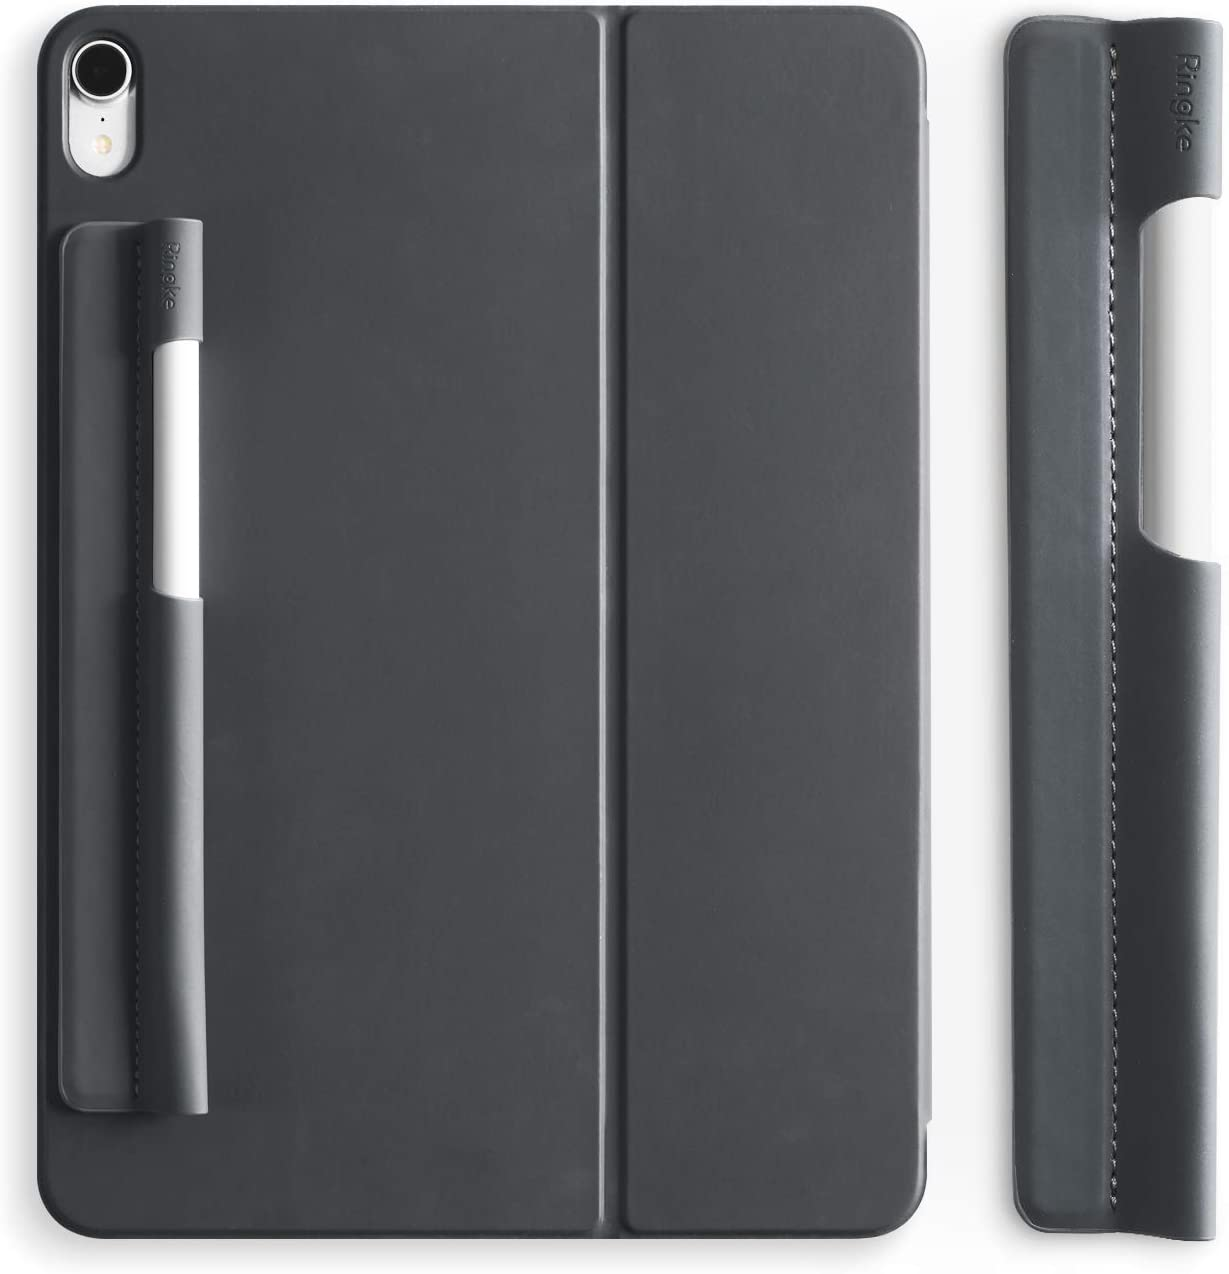 Ringke Pen Sleeve Charcoal Gray Designed for Apple Pencil, Journal, Tablets, and More